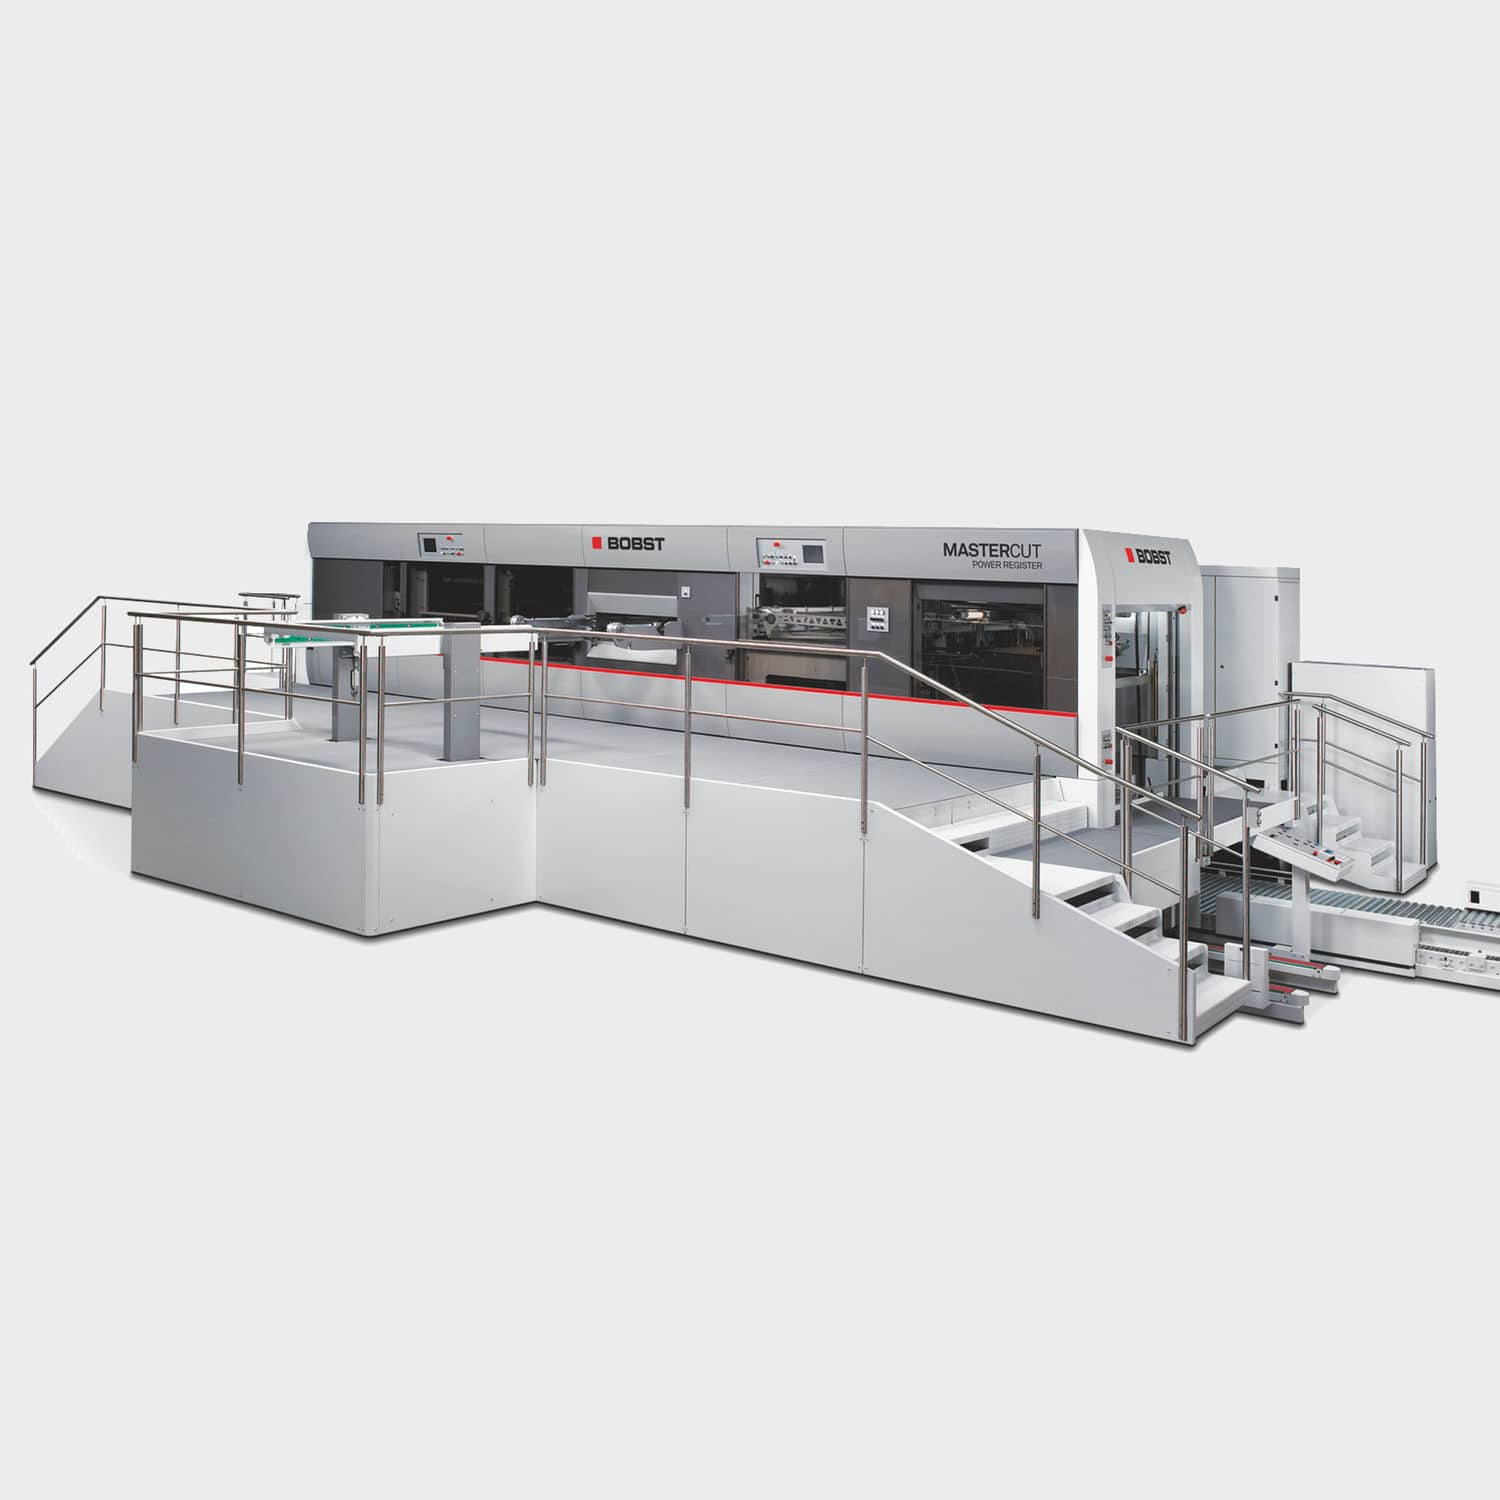 Paper Cutting Machine For Metal Die CNC MASTERCUT 145 PER BOBST